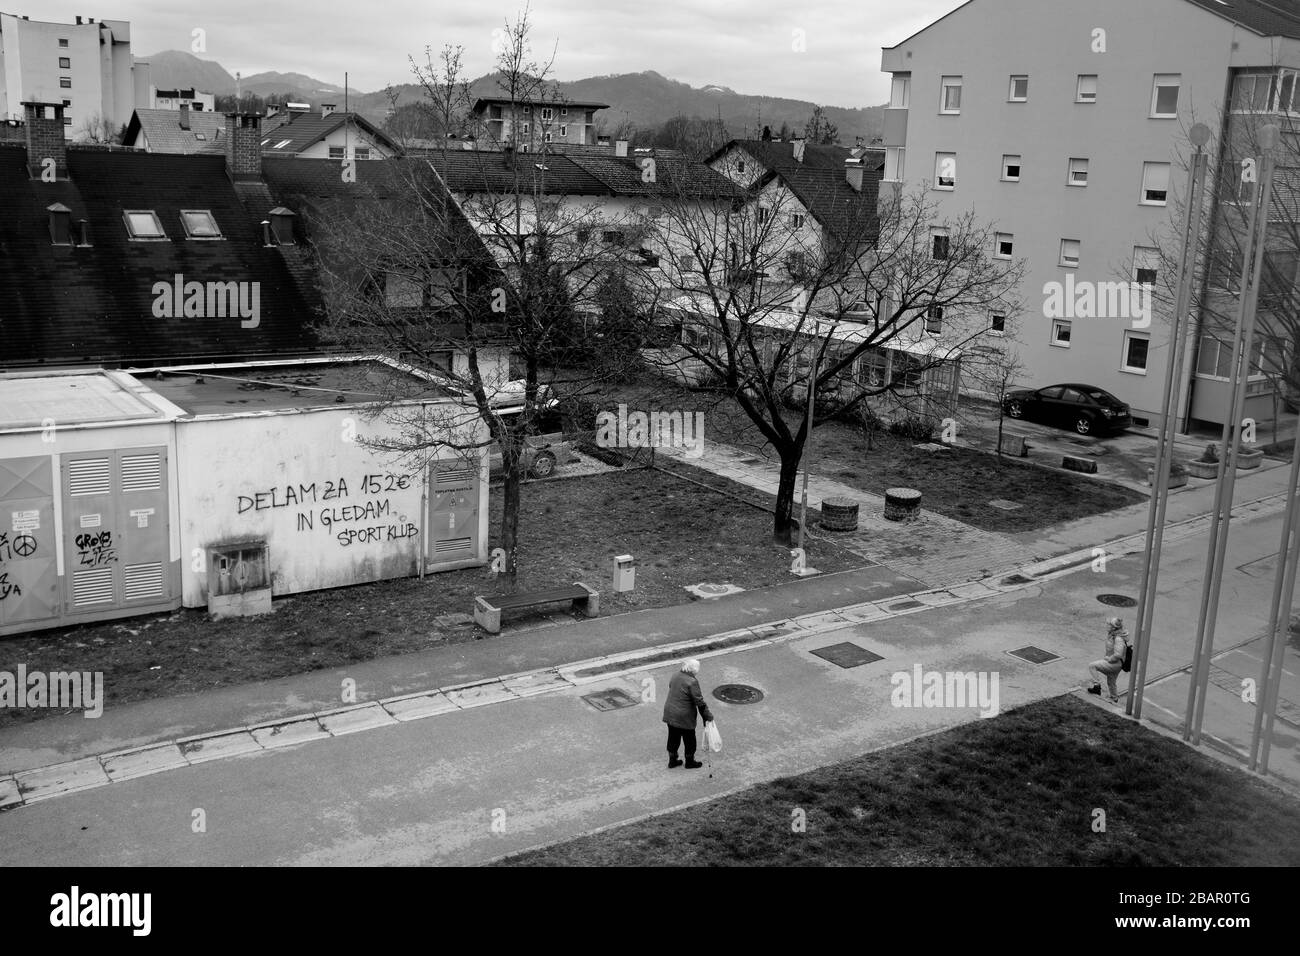 Kranj, Slovenia, March 22, 2020: Two elderly women speak to each other on the street maintaining a large distance in accordance with social distancing rules during the coronavirus outbreak nationwide lockdown. Stock Photo